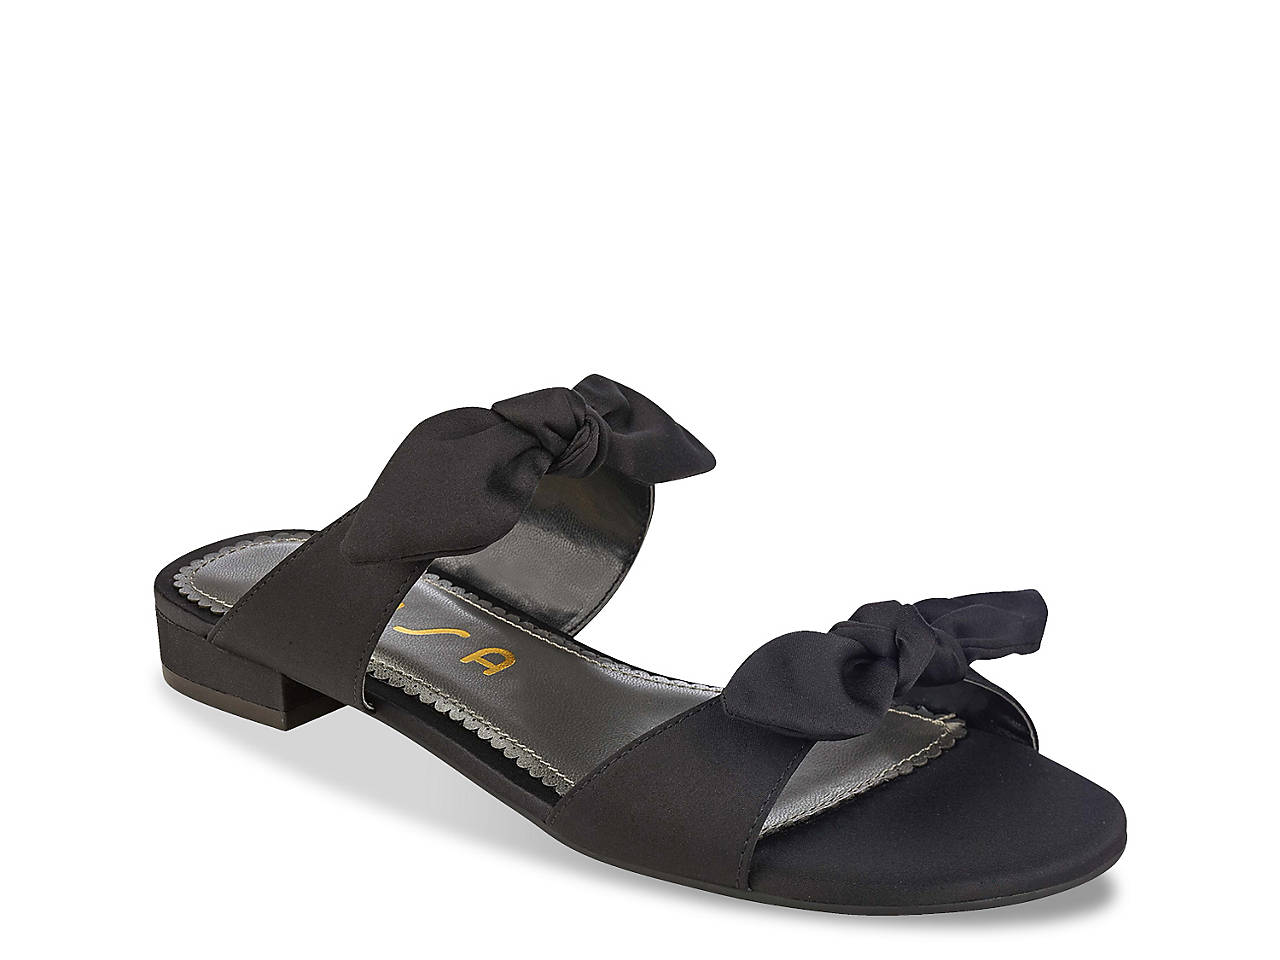 a2c5eff87b91 Unisa Karami Sandal Women s Shoes